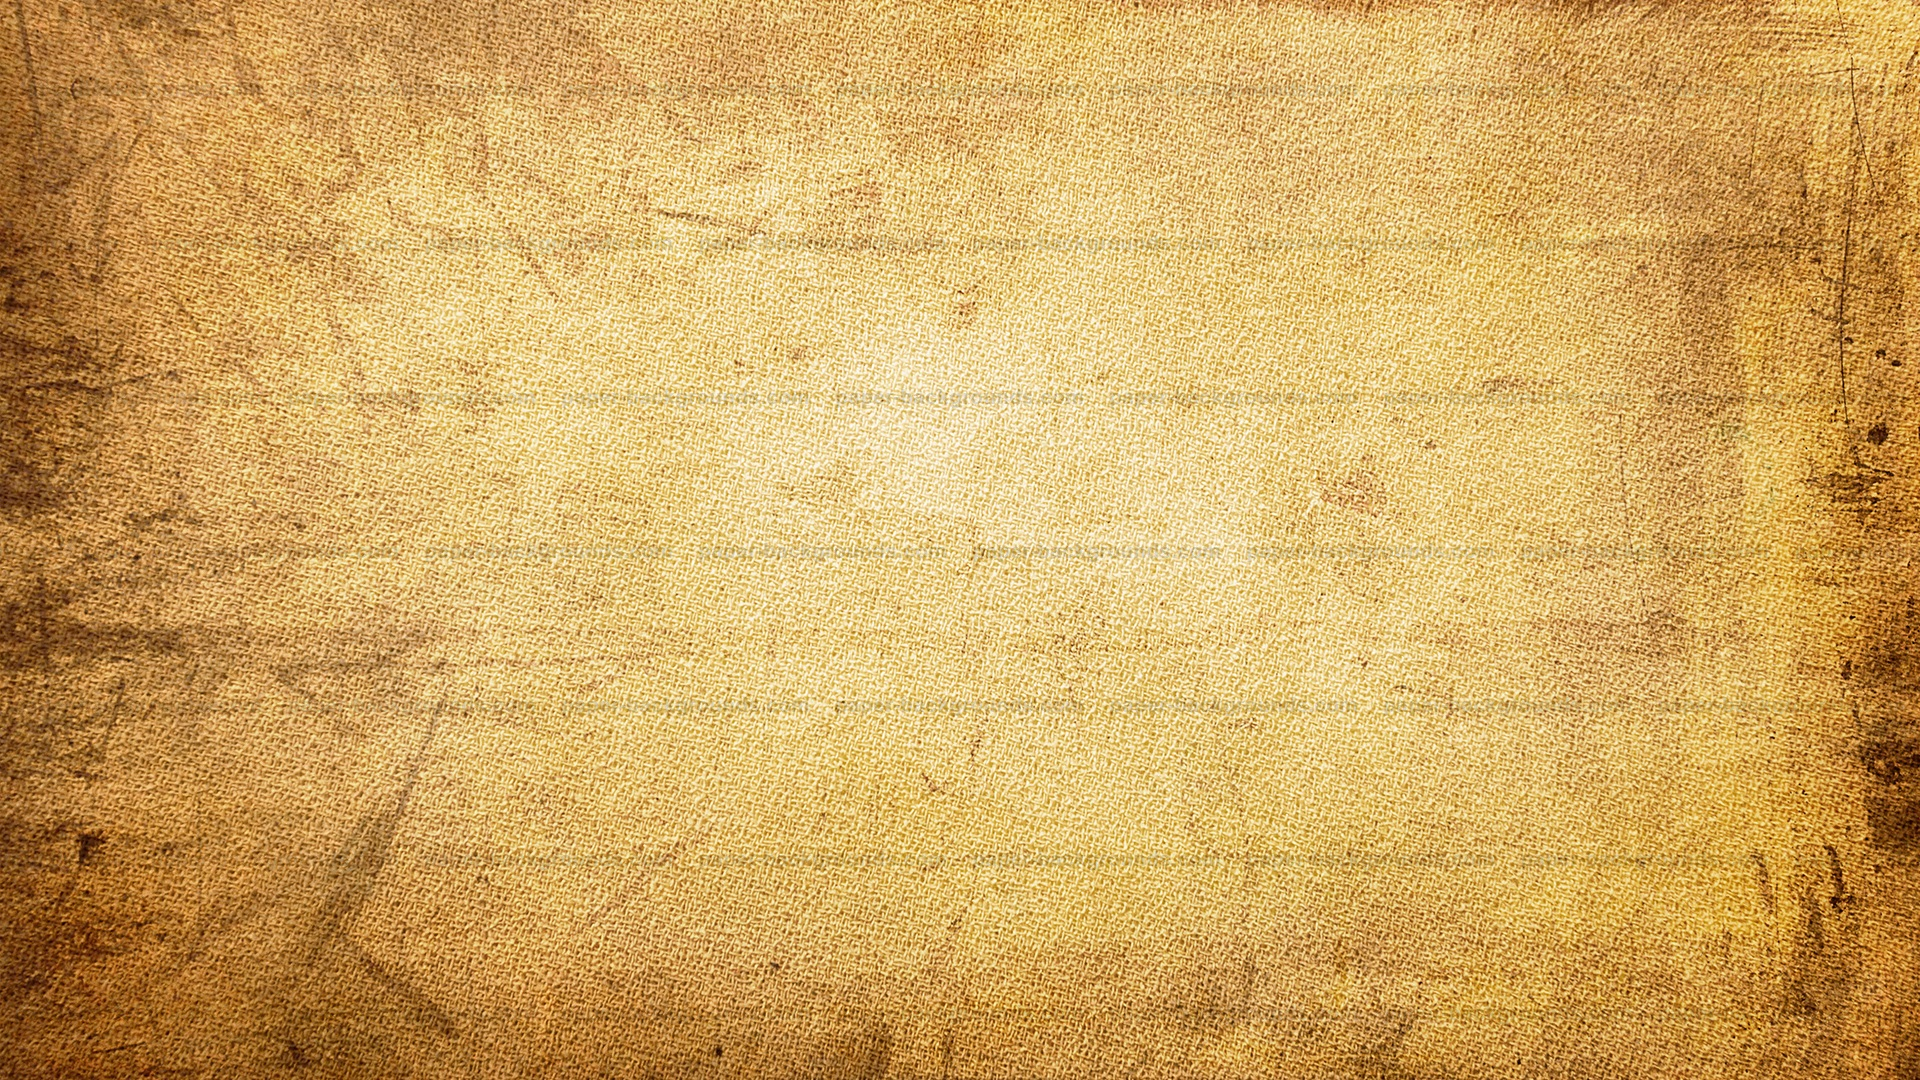 Yellow Vintage Fabric Texture Background HD